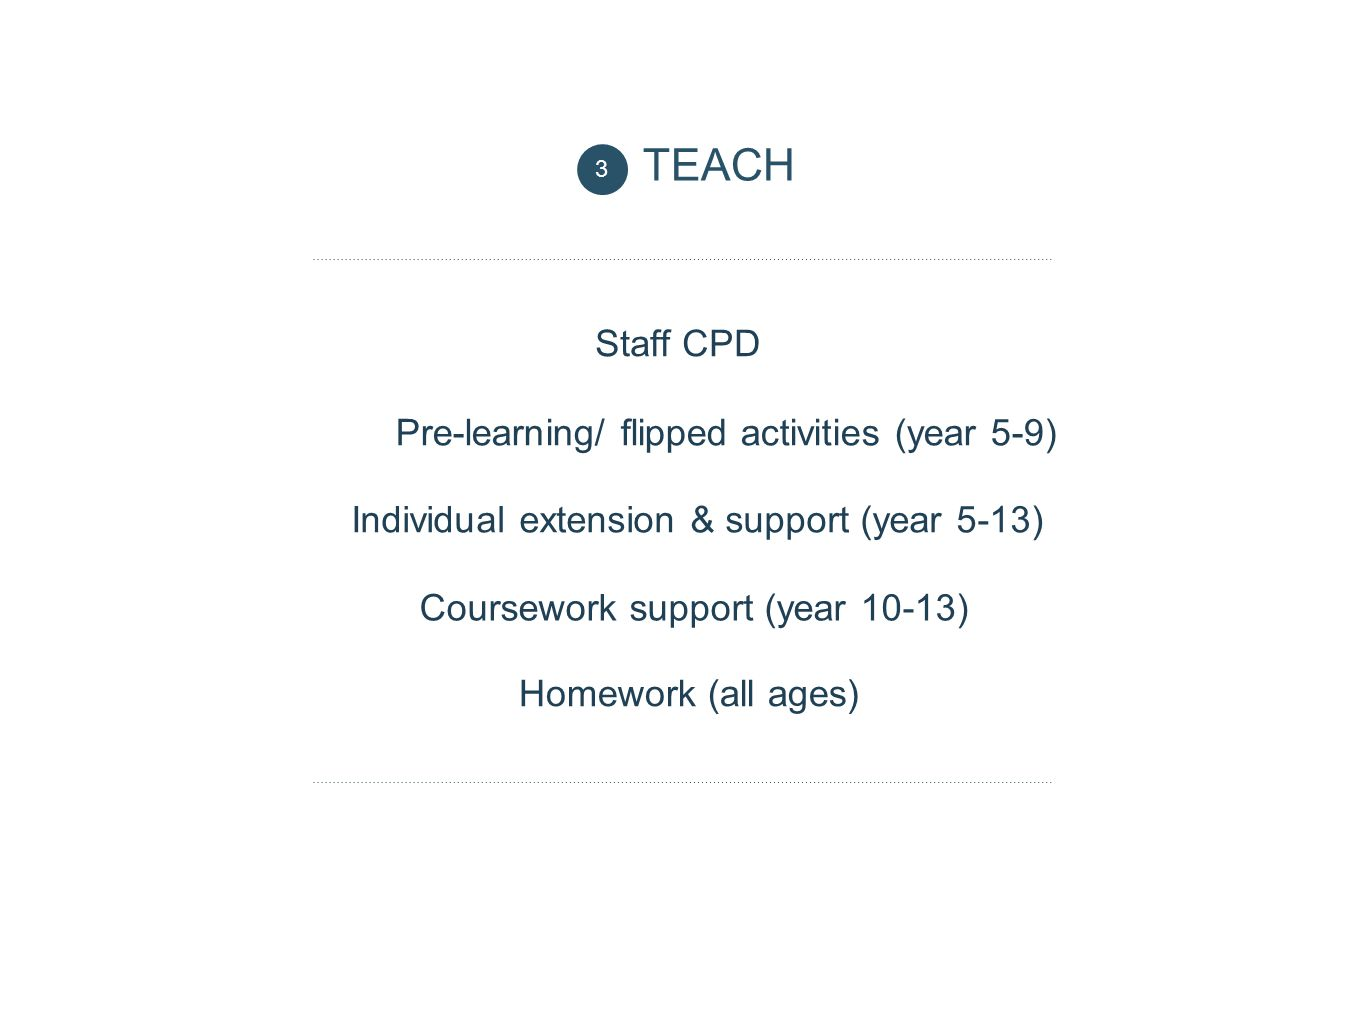 TEACH Staff CPD Pre-learning/ flipped activities (year 5-9)